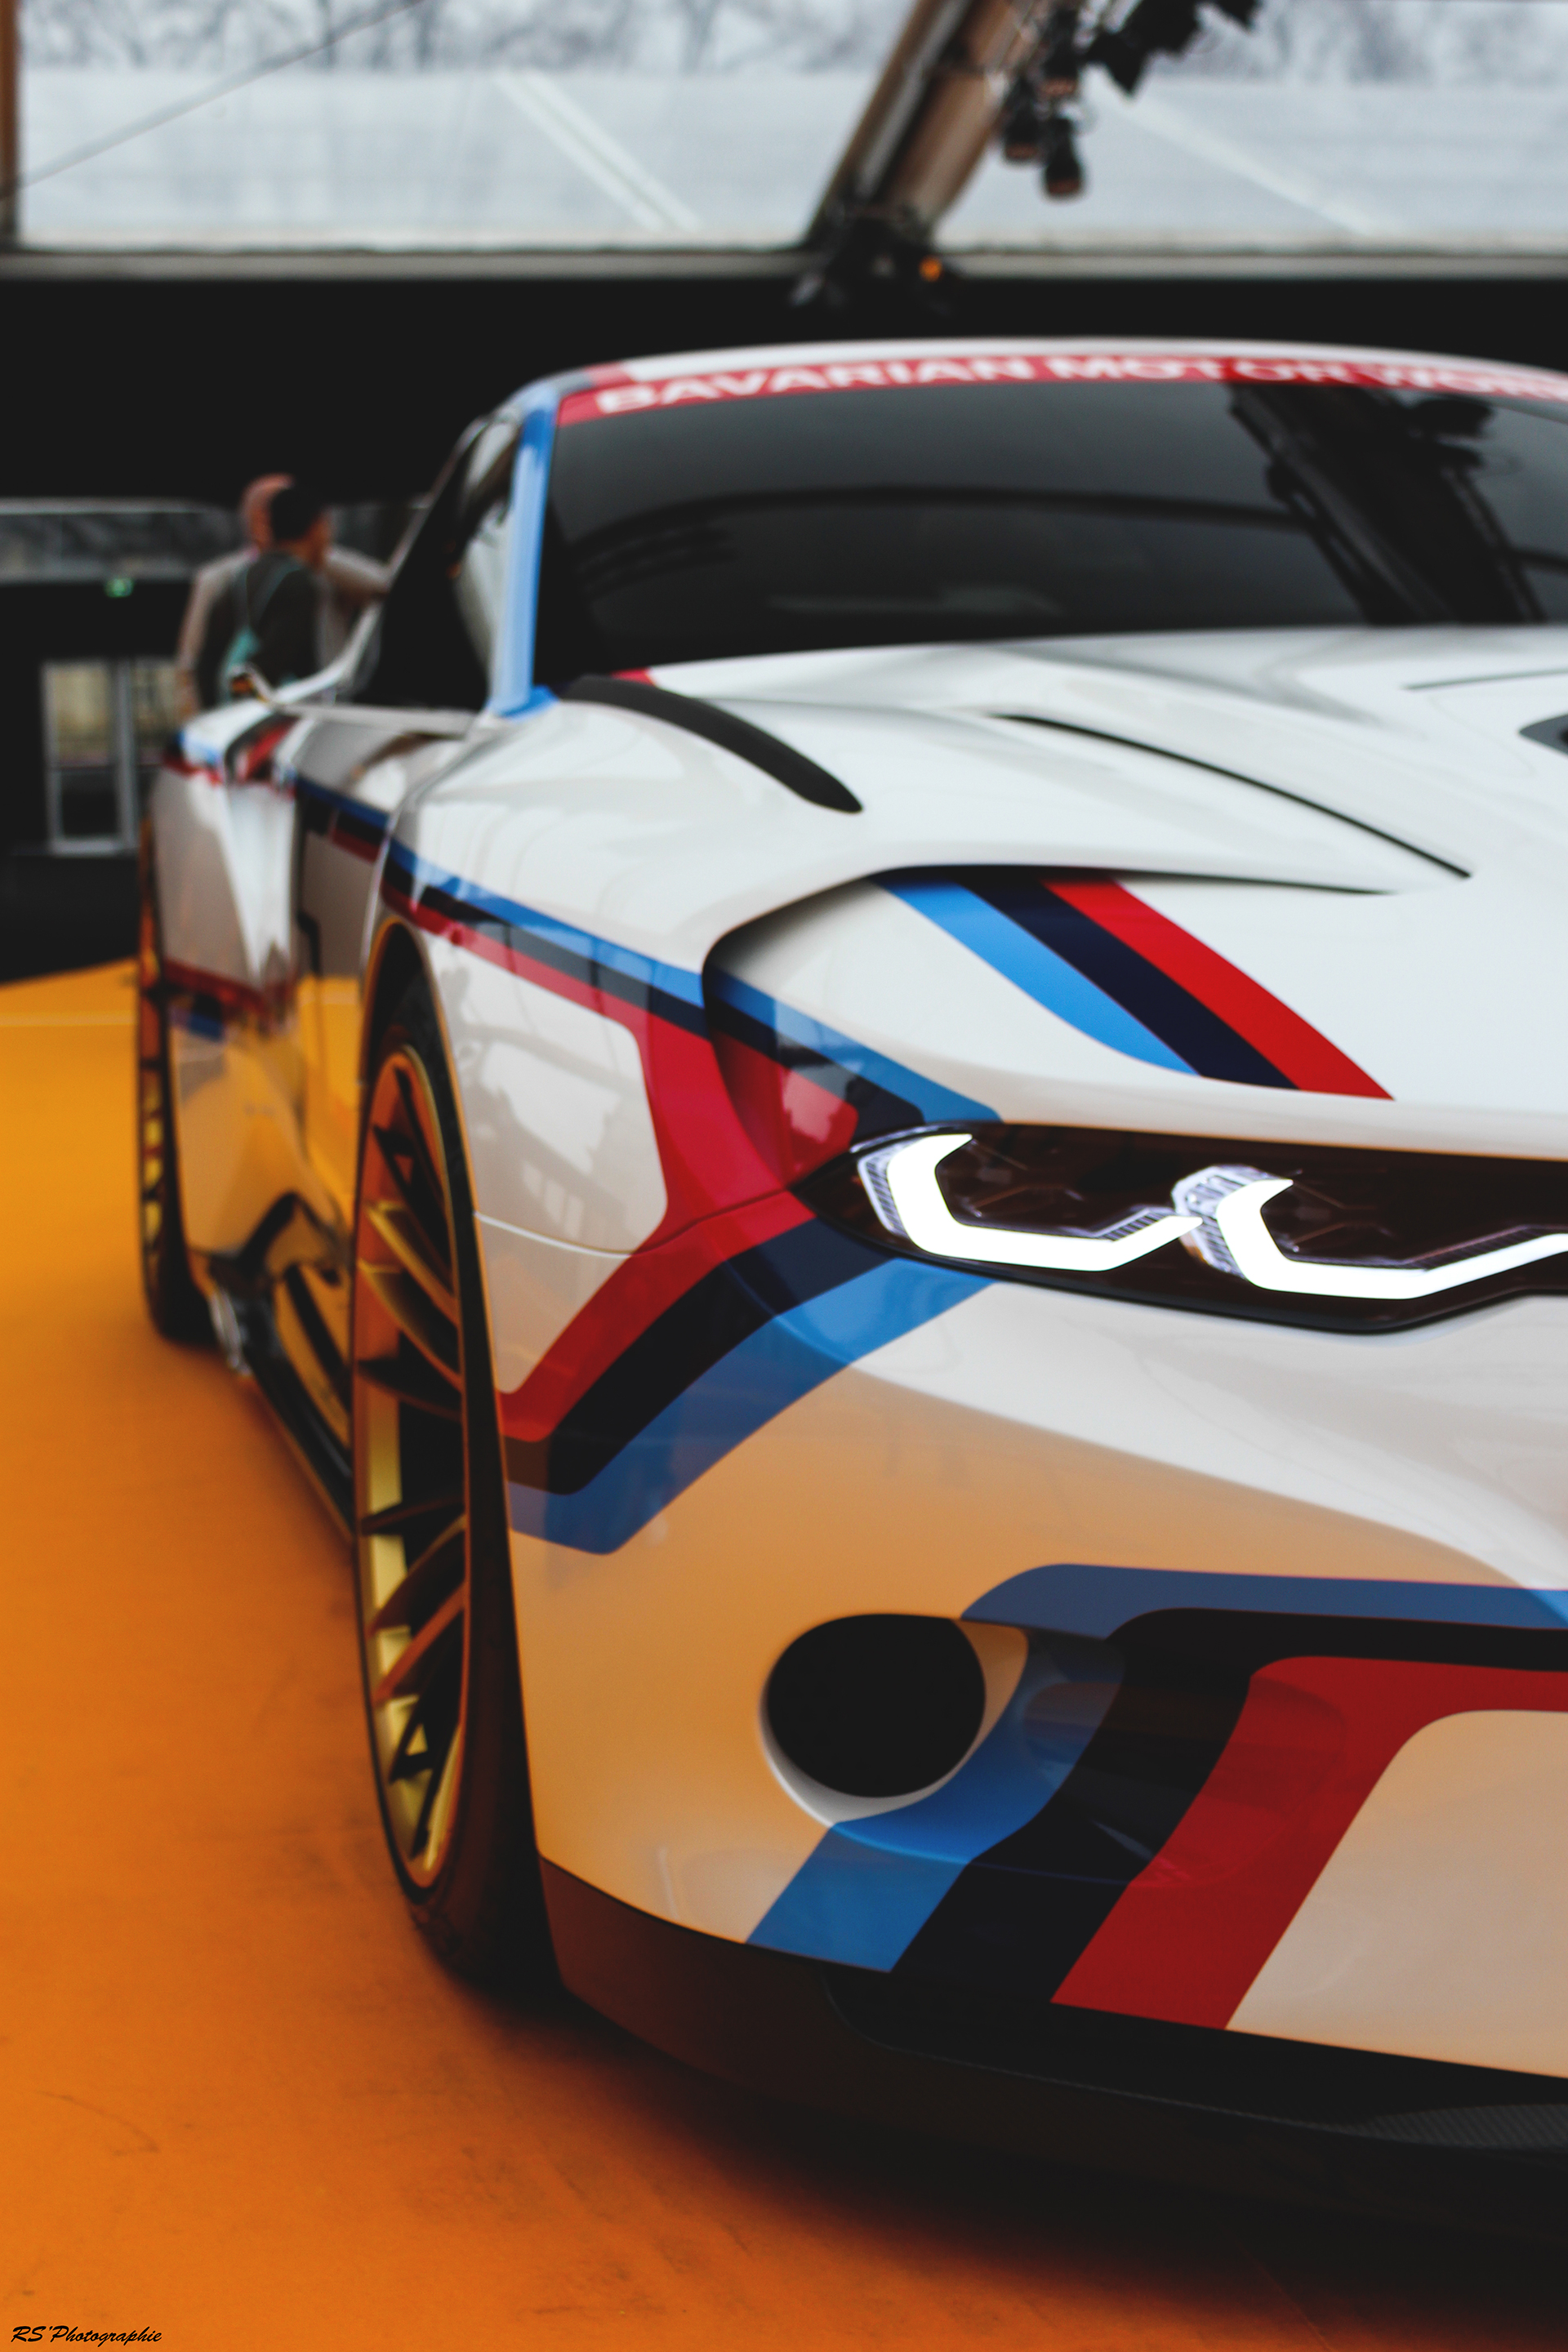 BMW 3.0 CSL Hommage - optique avant / front light - Exposition Concept cars 2016 - Arnaud Demasier RS Photographie